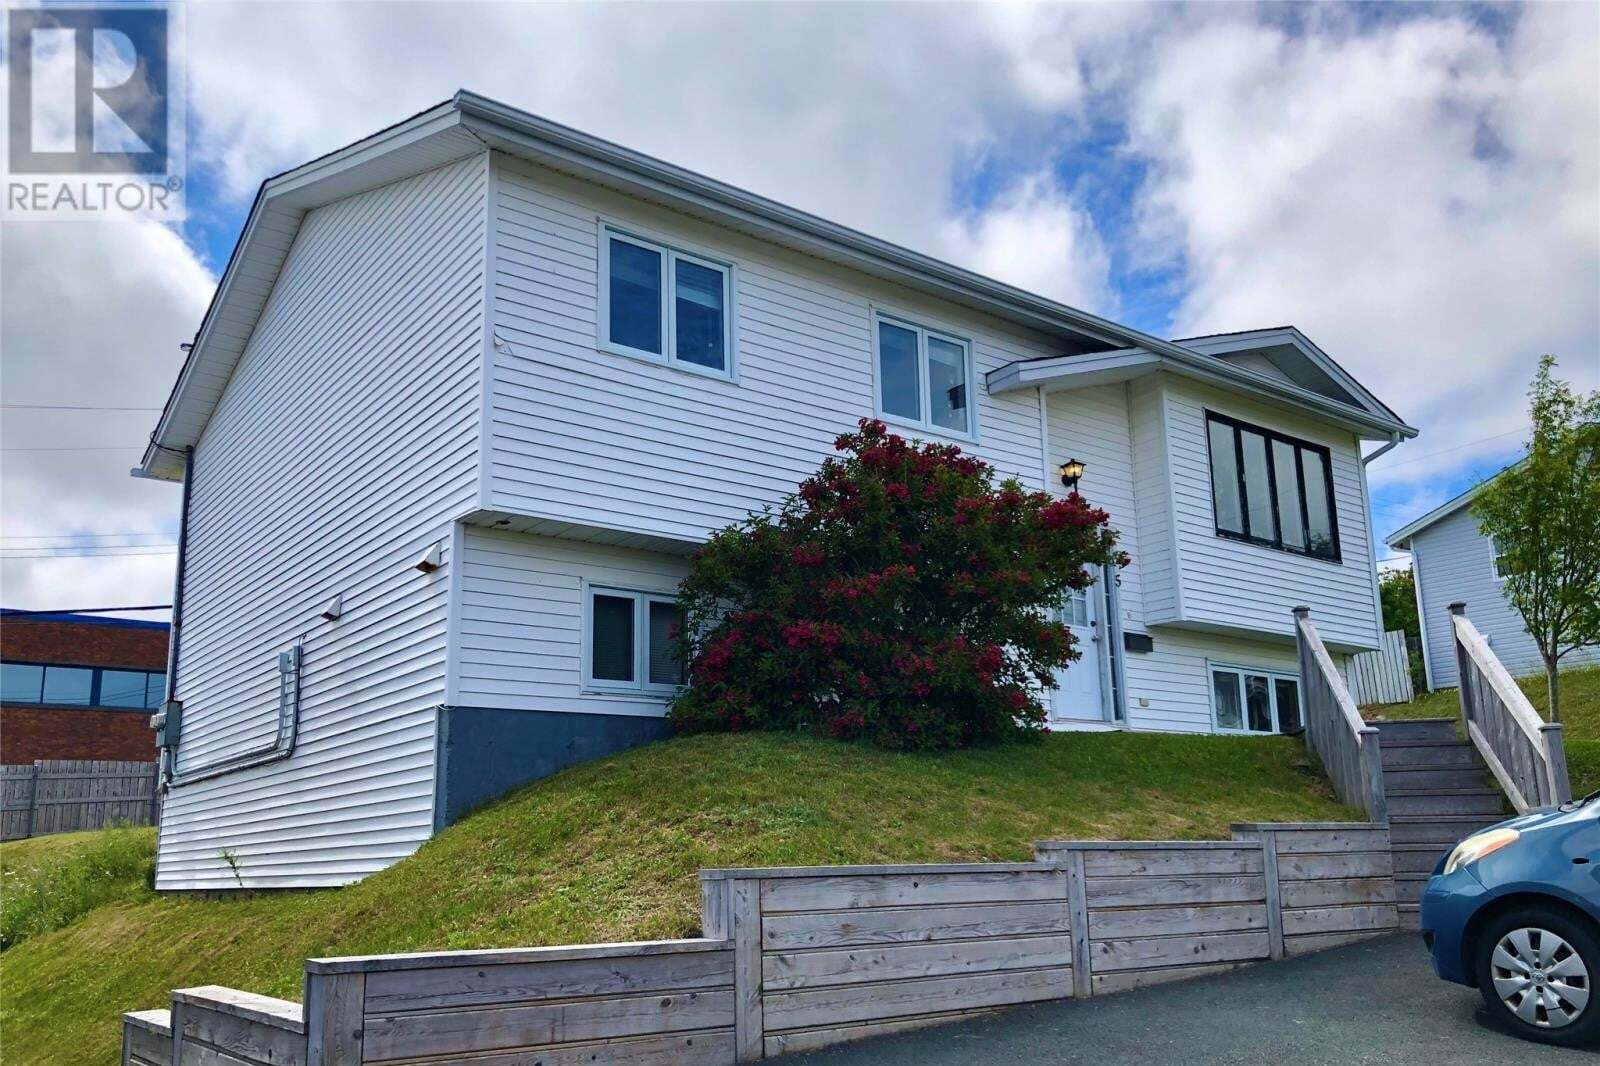 House for sale at 5 Musgrave St St. John's Newfoundland - MLS: 1222611